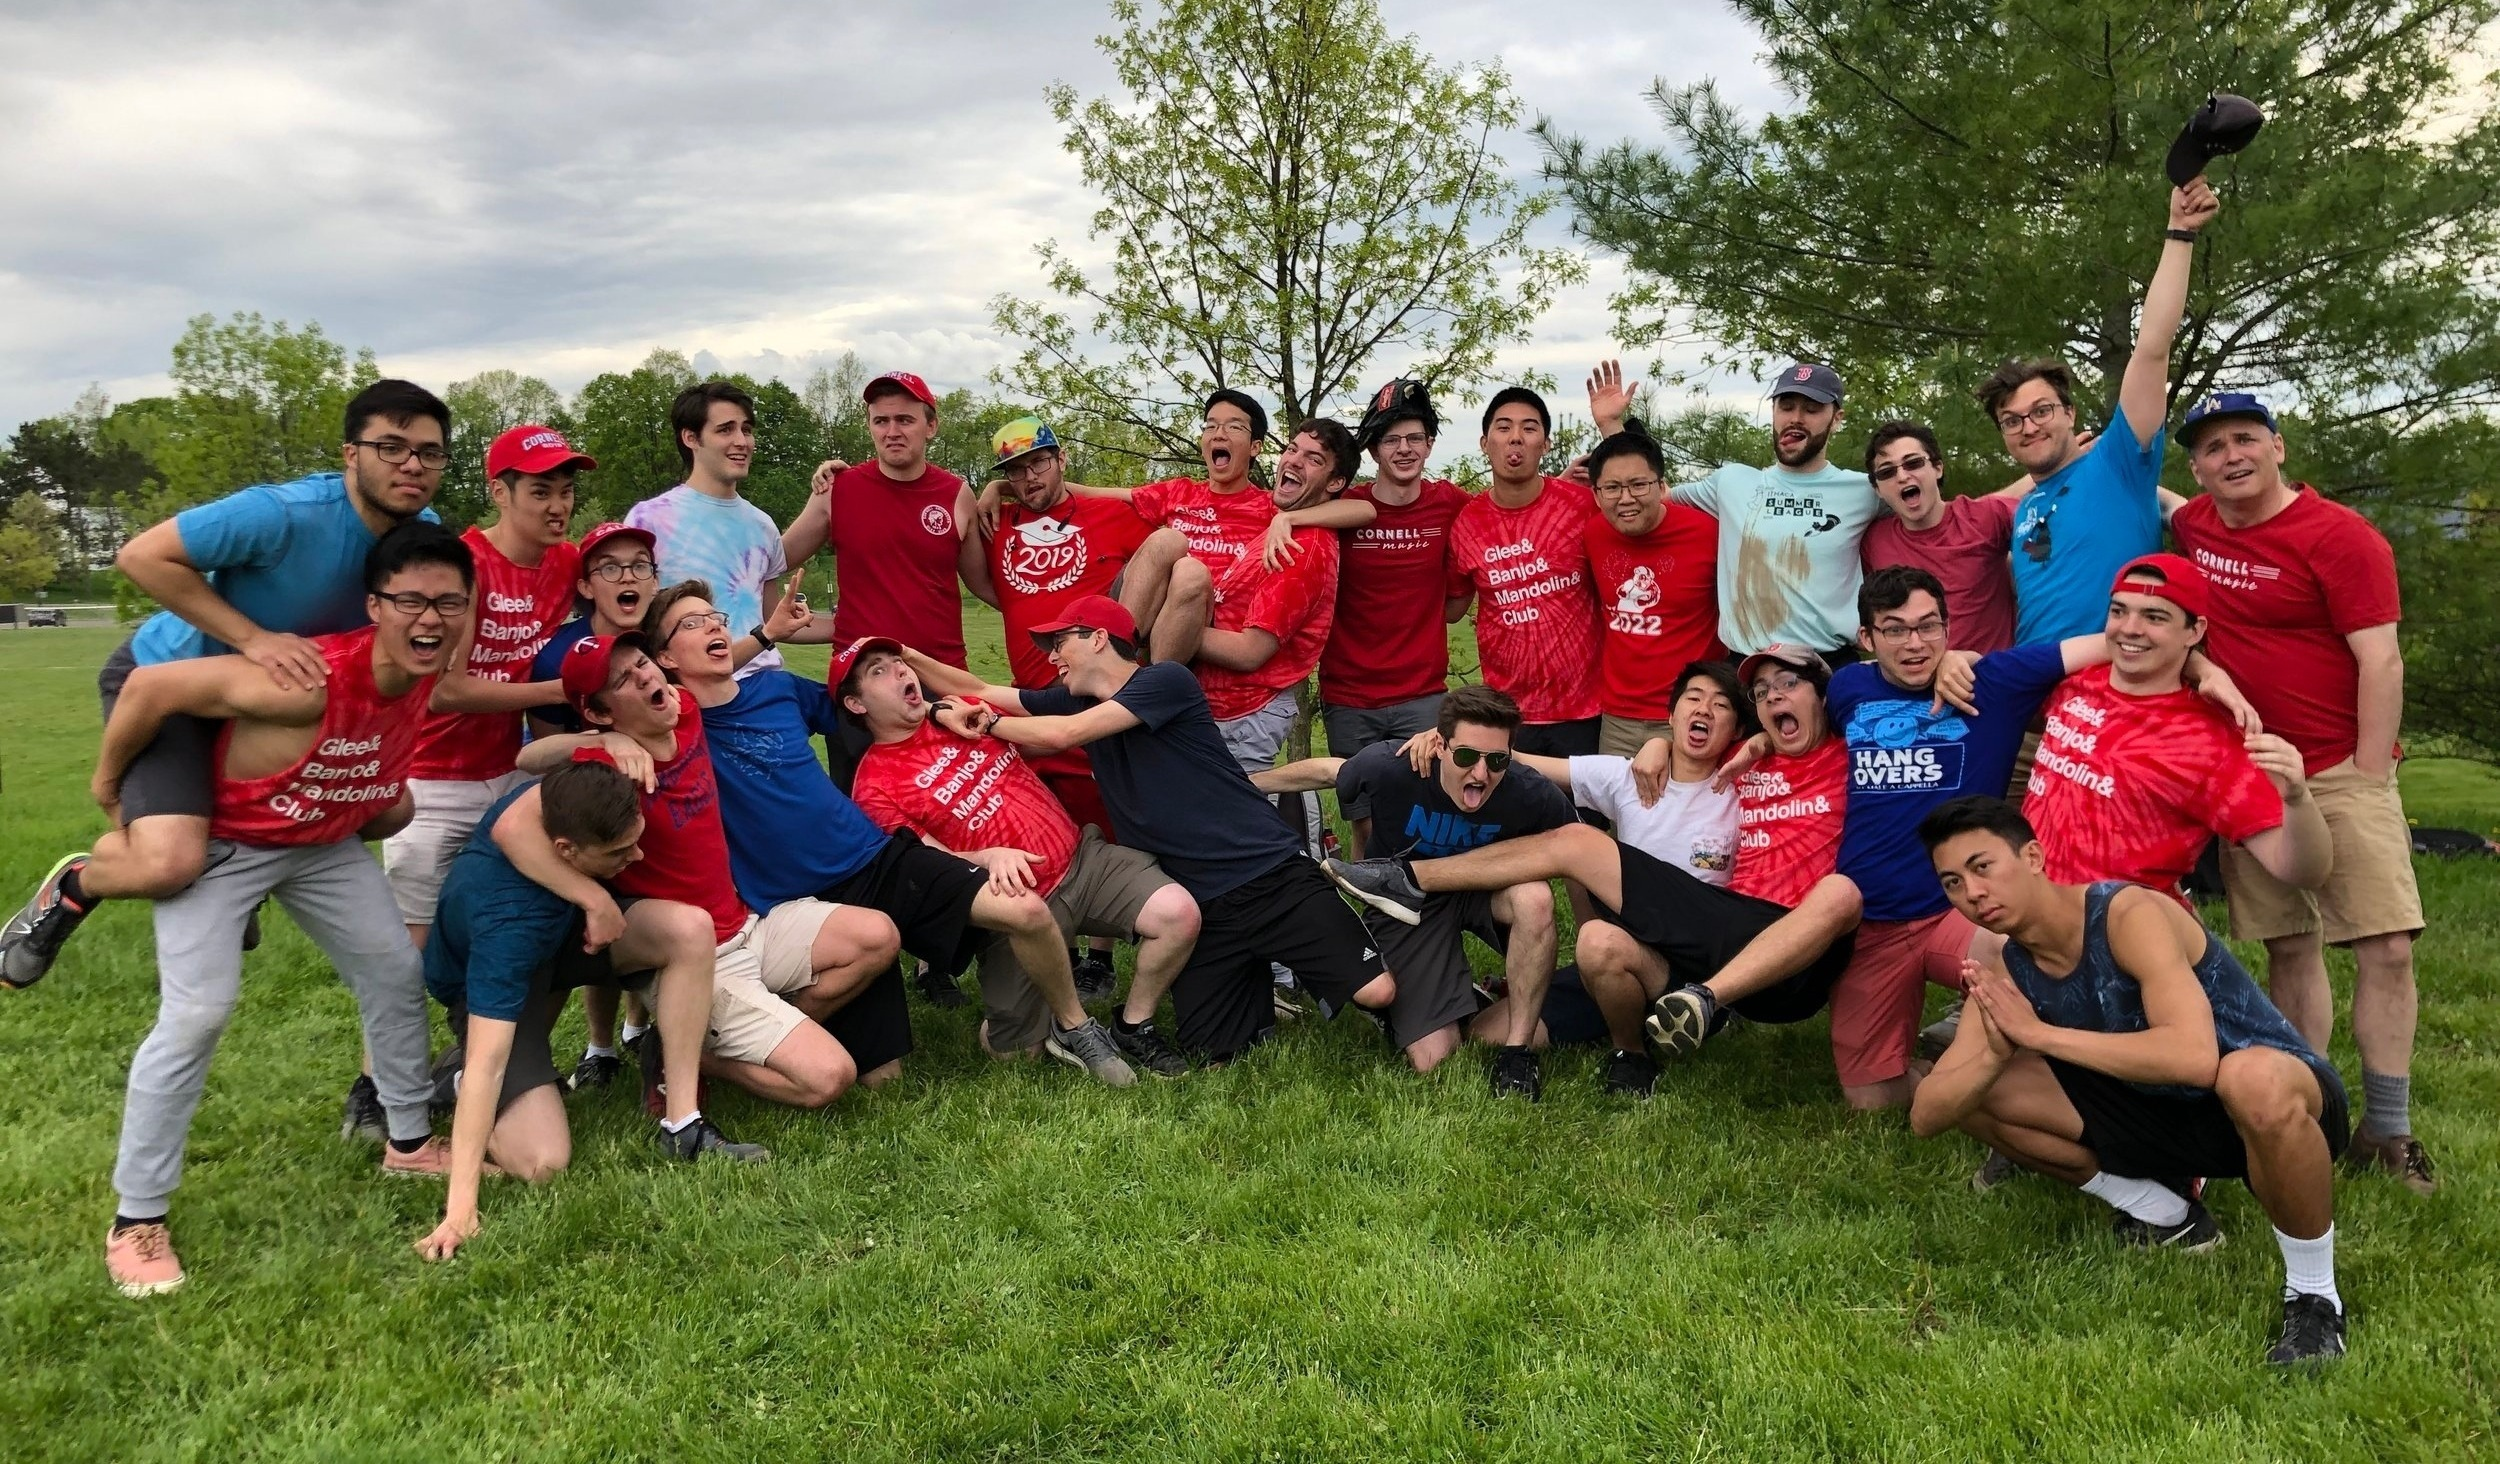 Tenor vs. Bass Softball, May 2019.  Glee Club